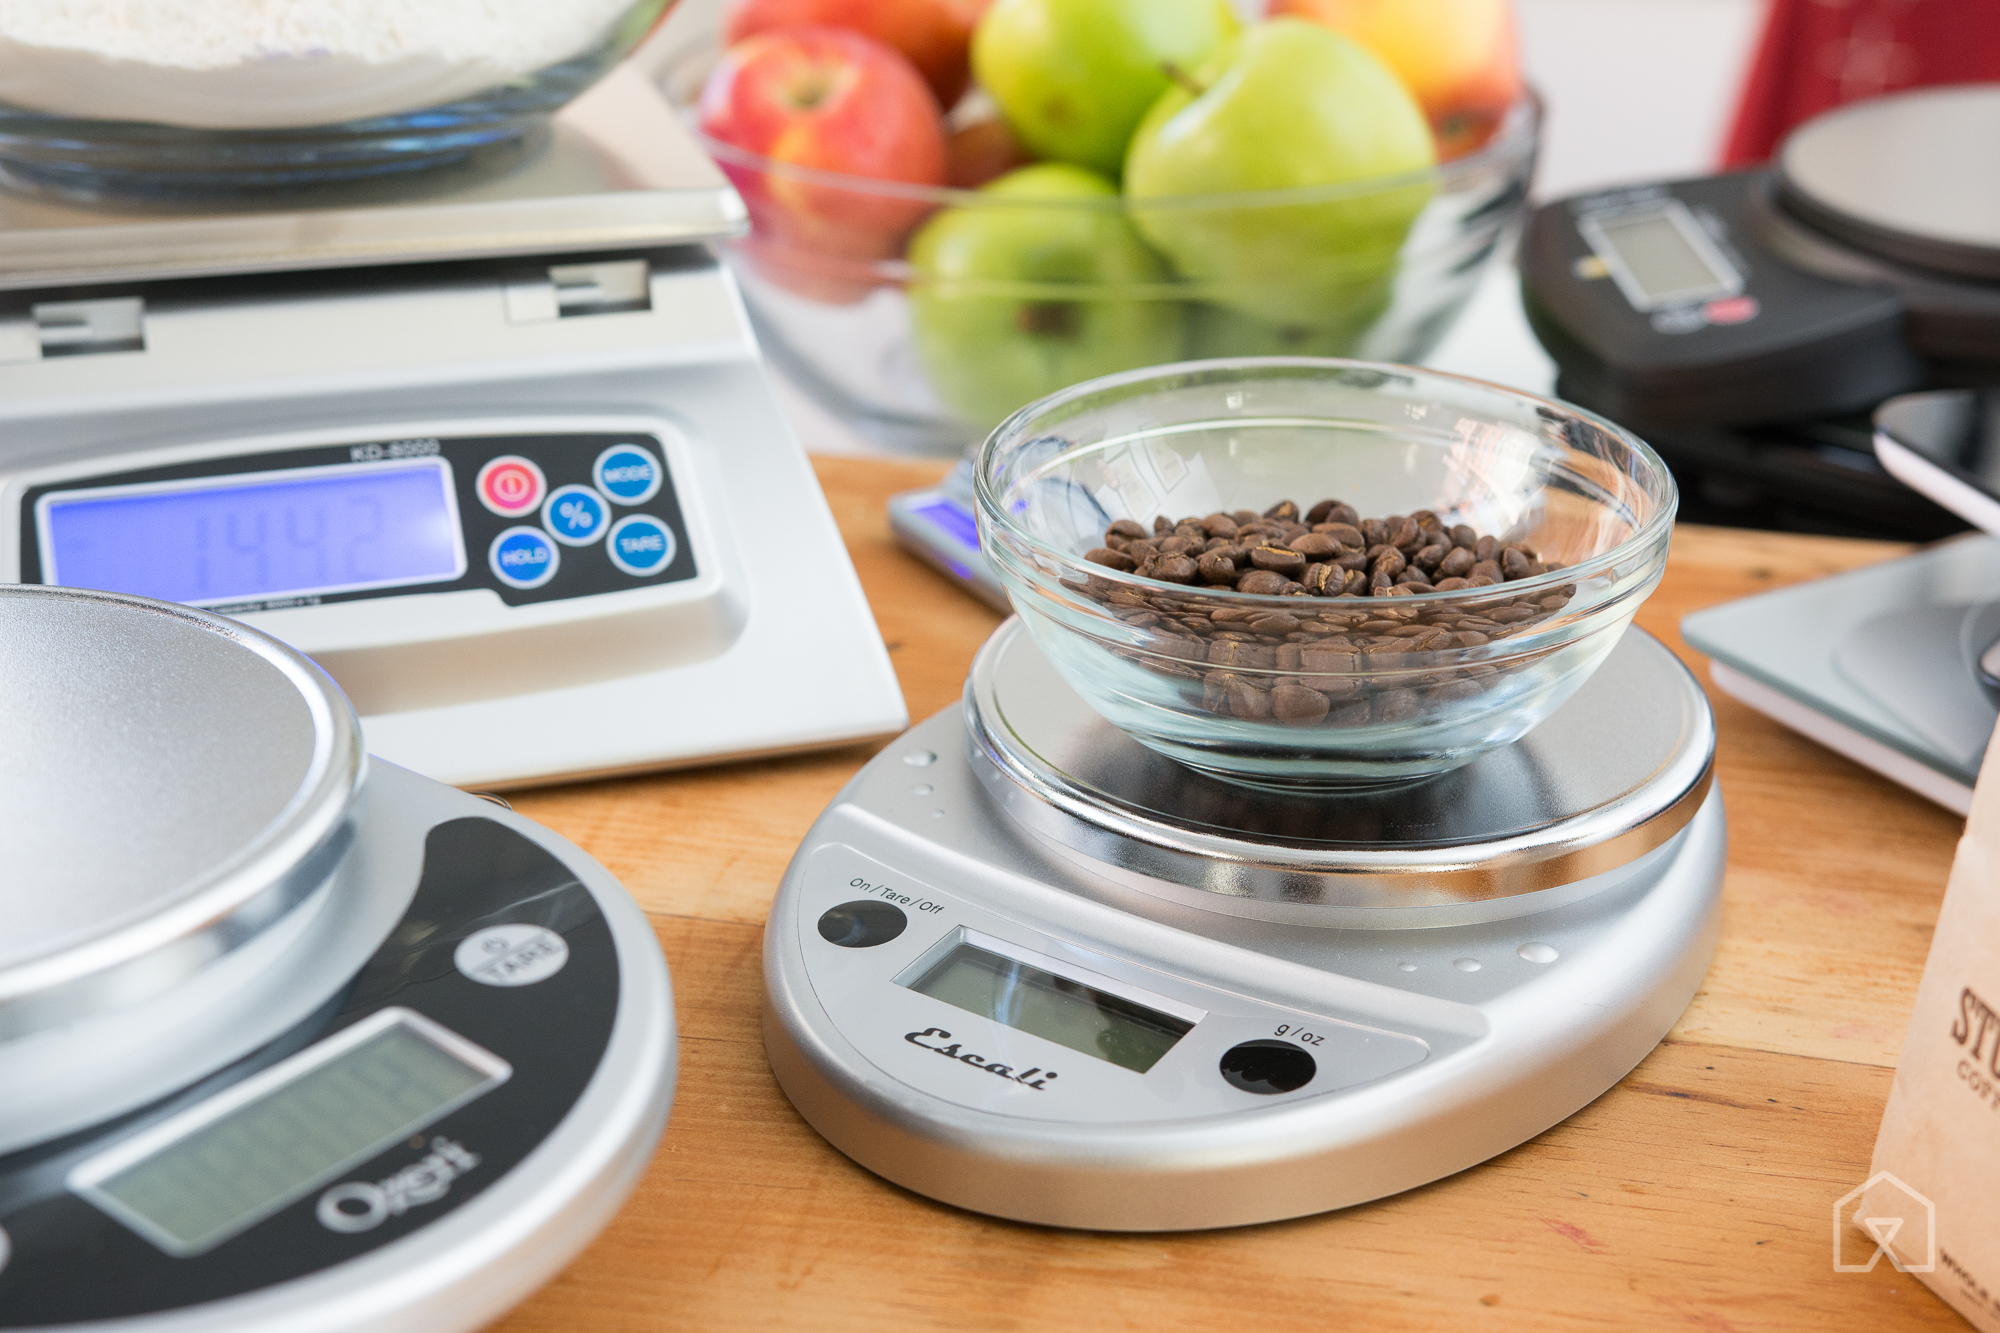 The best kitchen scale | Engadget